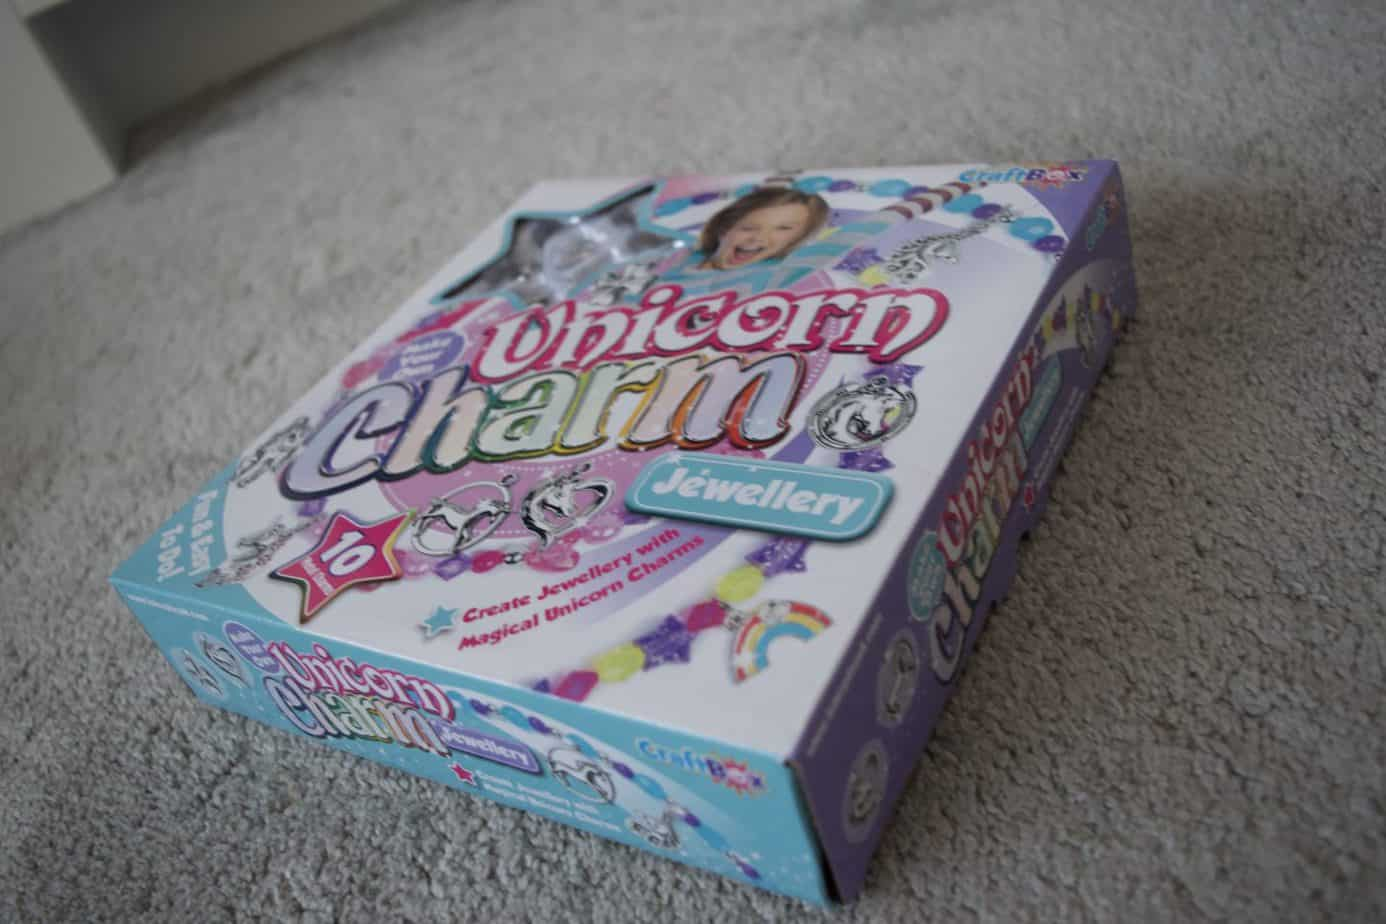 Unicorn charm jewellery making kit box unopened